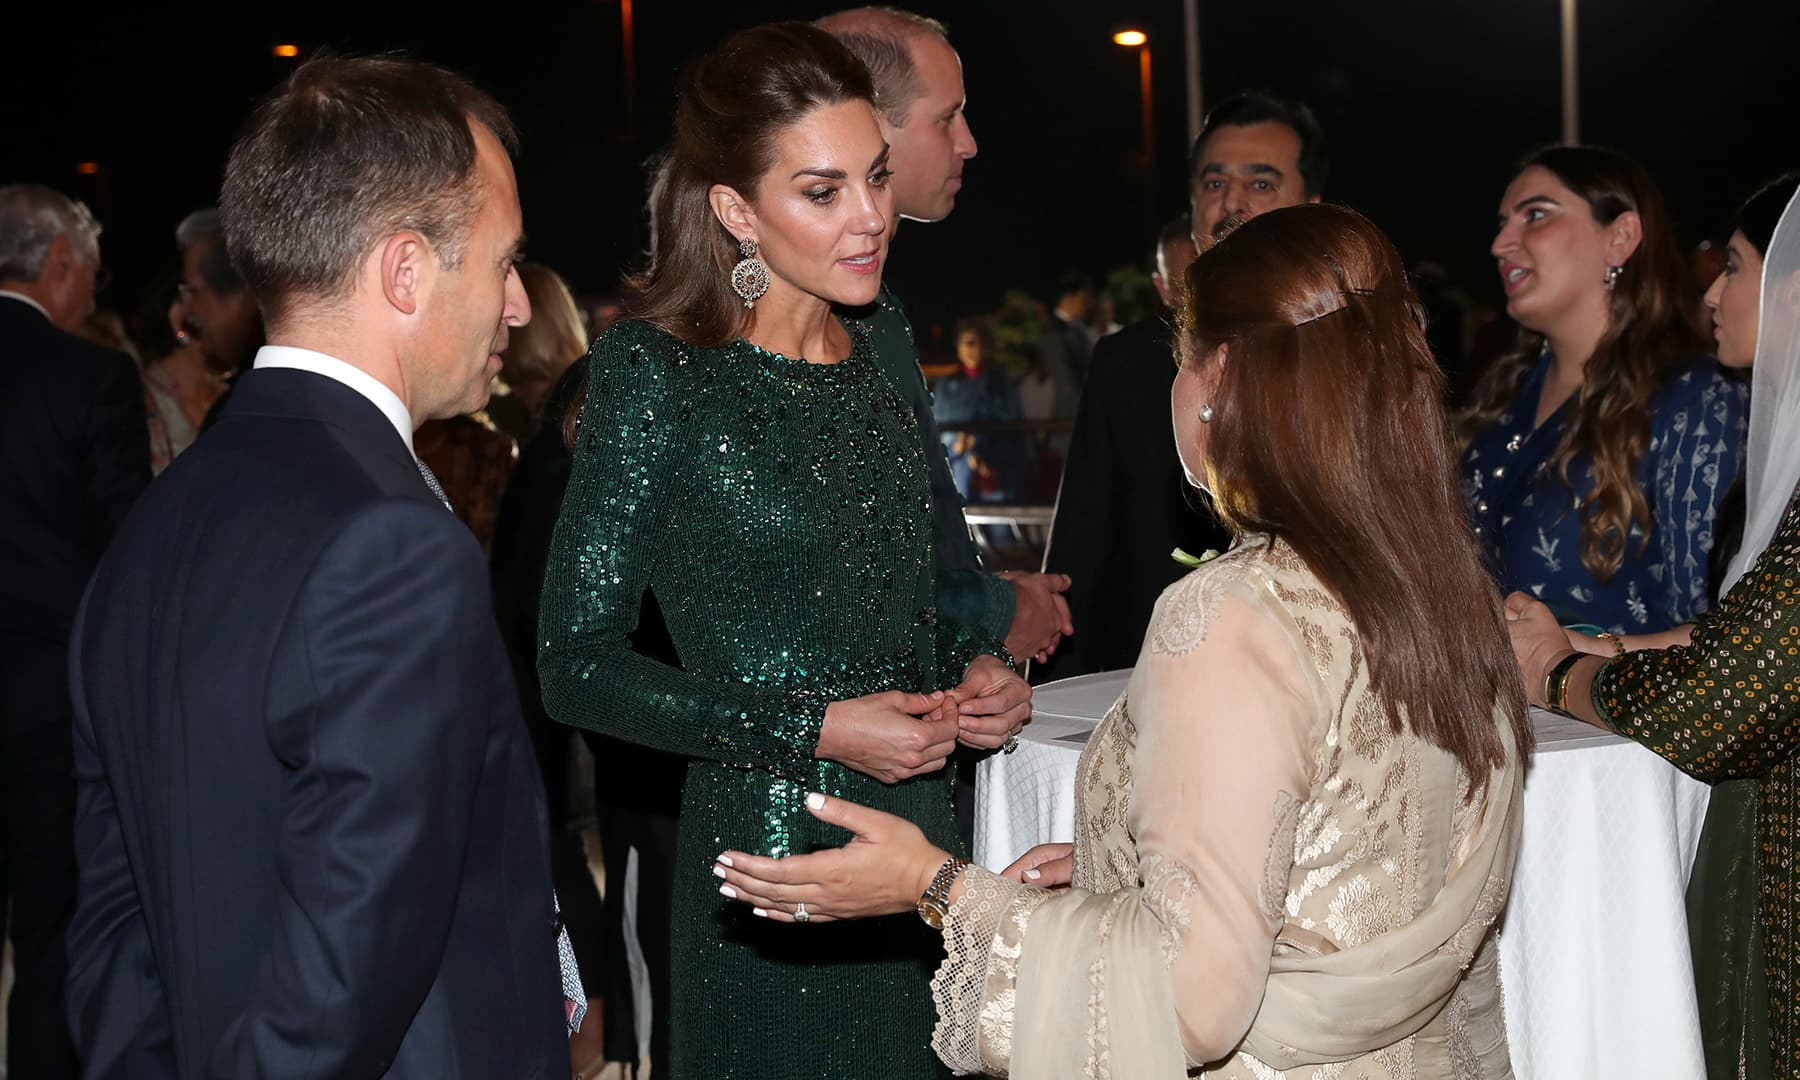 Britain's Prince William and Catherine, Duchess of Cambridge, speak with guests as they attend a reception hosted by the British High Commissioner to Pakistan, Thomas Drew, at the Pakistan National Monument in Islamabad. — Reuters